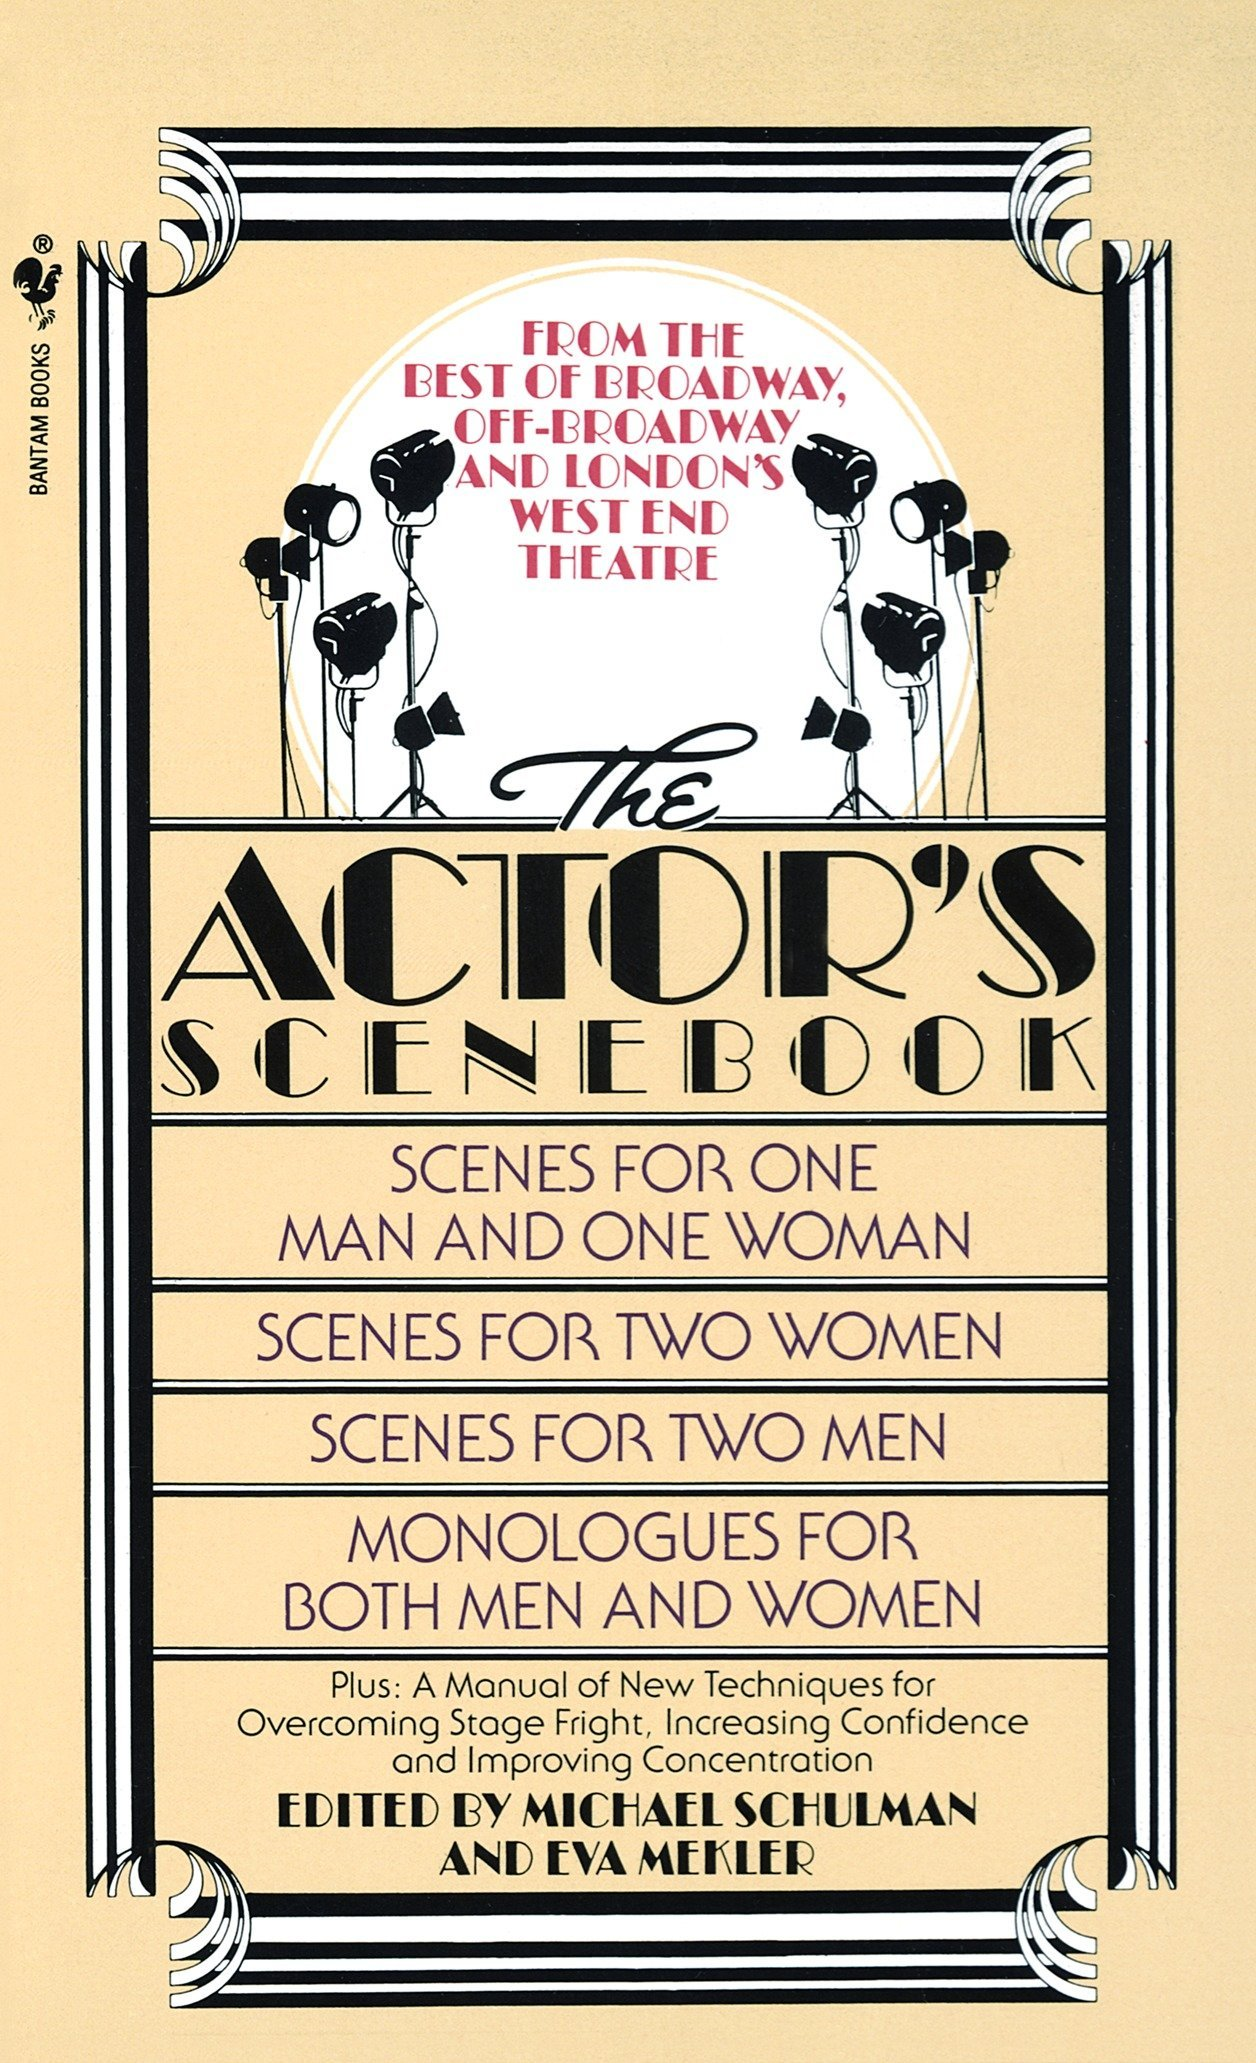 The Actor's Scenebook: Scenes and Monologues From Contemporary Plays:  Michael Schulman, Eva Mekler: 9780553263664: Amazon.com: Books